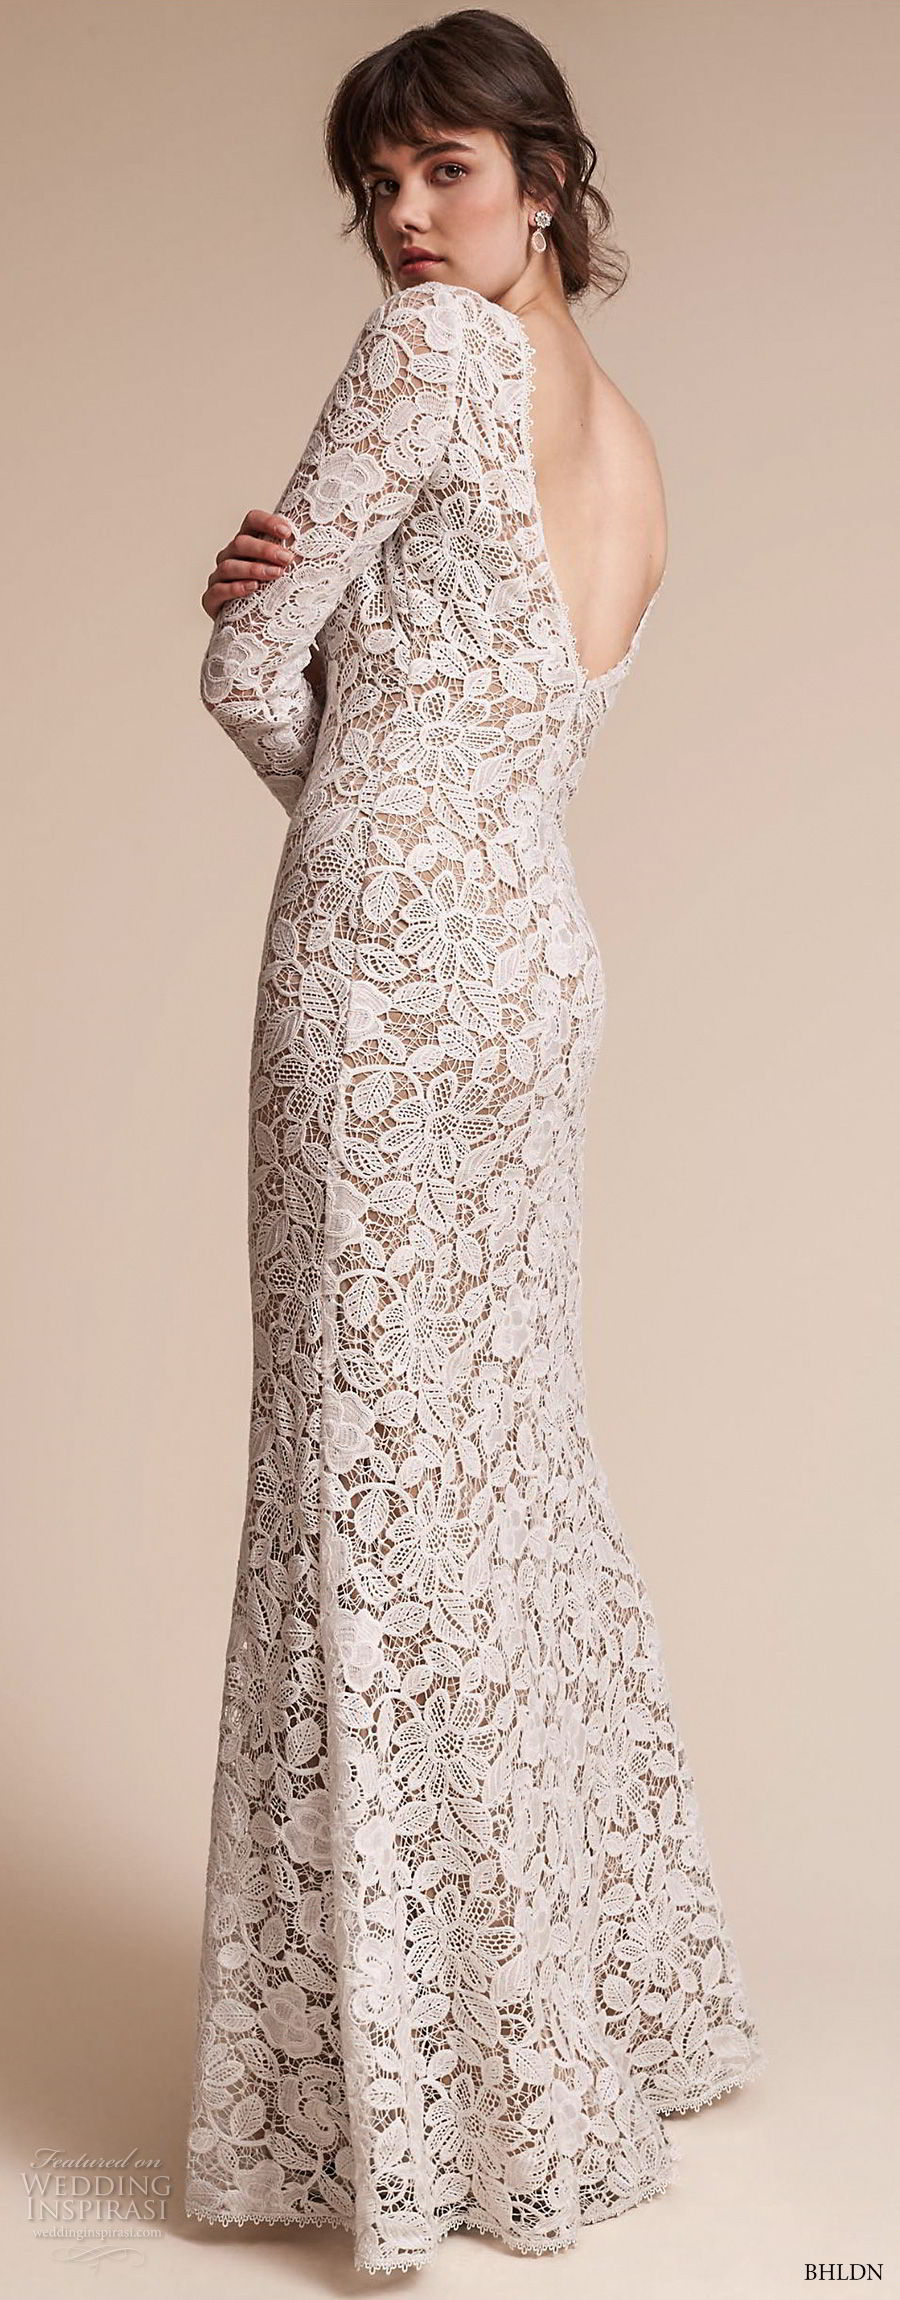 bhldn fall 2017  americana bridal long sleeves jewel neck full embellishment elegant lace modified a  line wedding dress  open v back sweep train (medallion) bv